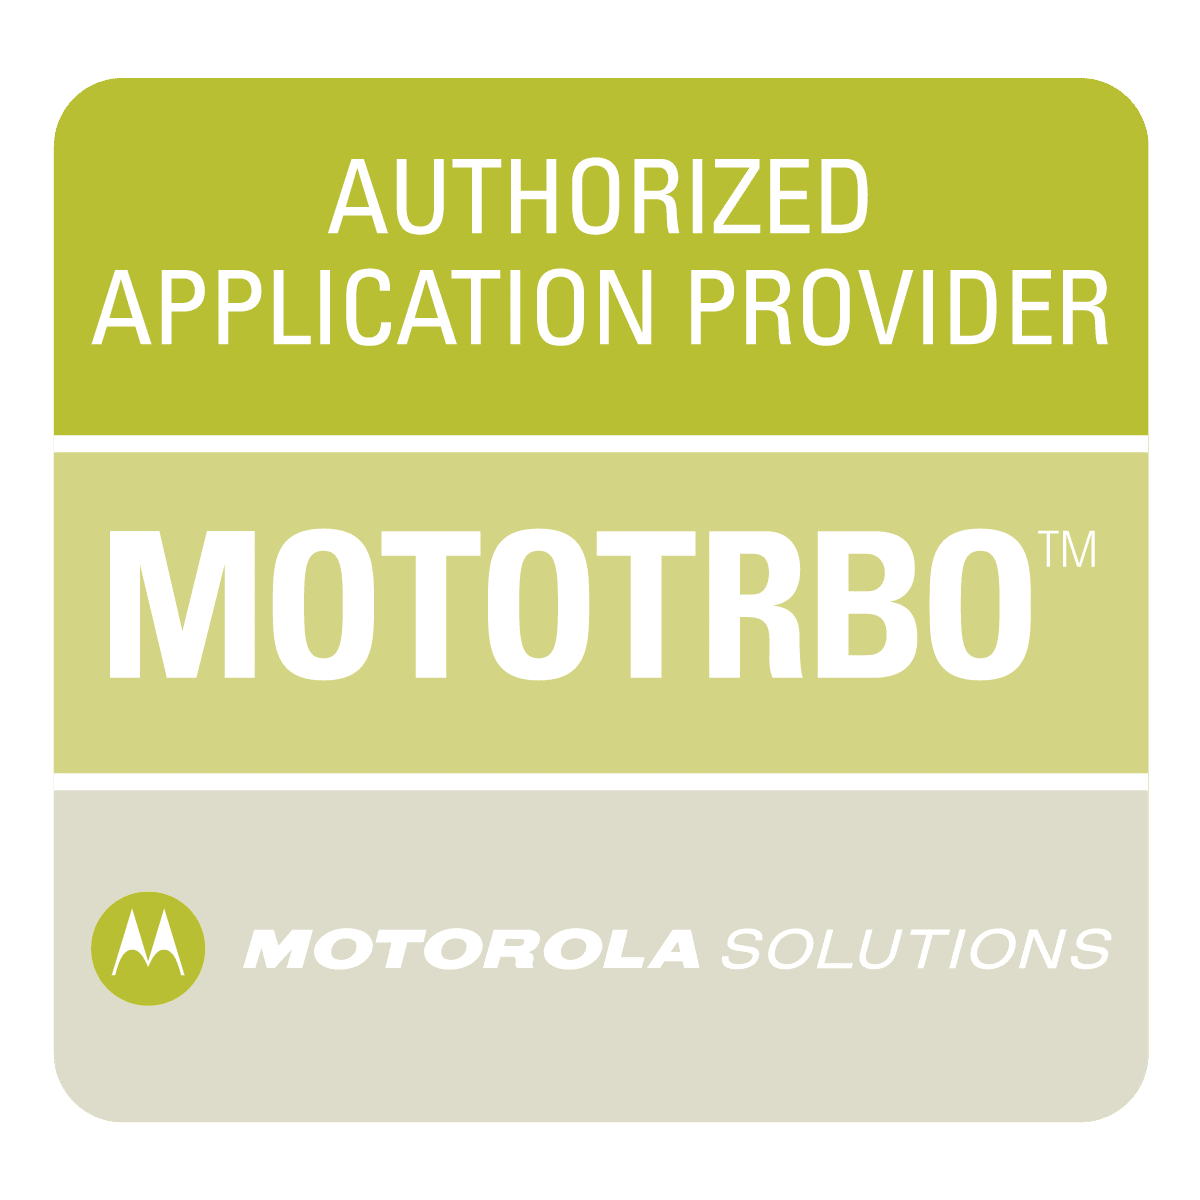 MototrboAuthorizedApplicationProvider.png